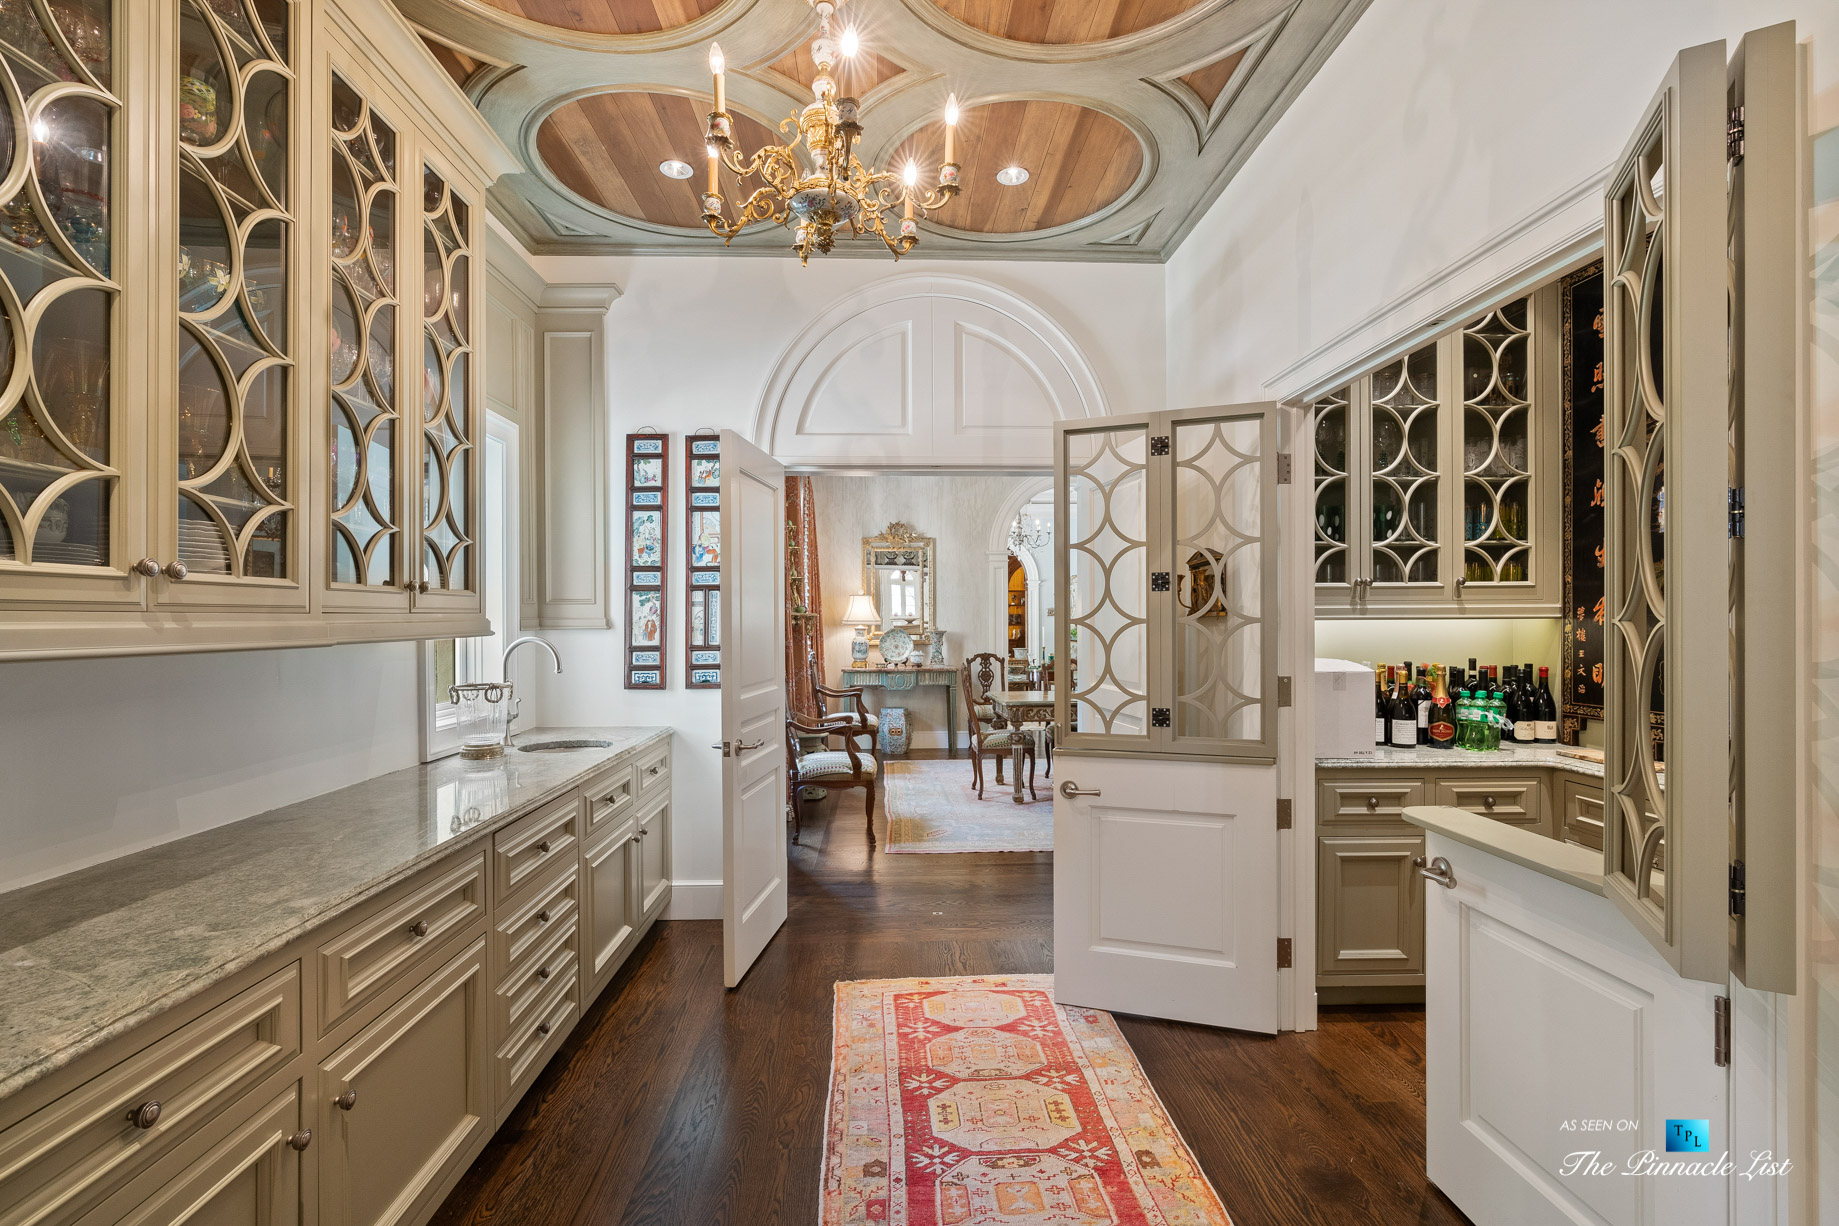 439 Blackland Rd NW, Atlanta, GA, USA – Formal Butlers Pantry Station – Luxury Real Estate – Tuxedo Park Mediterranean Mansion Home